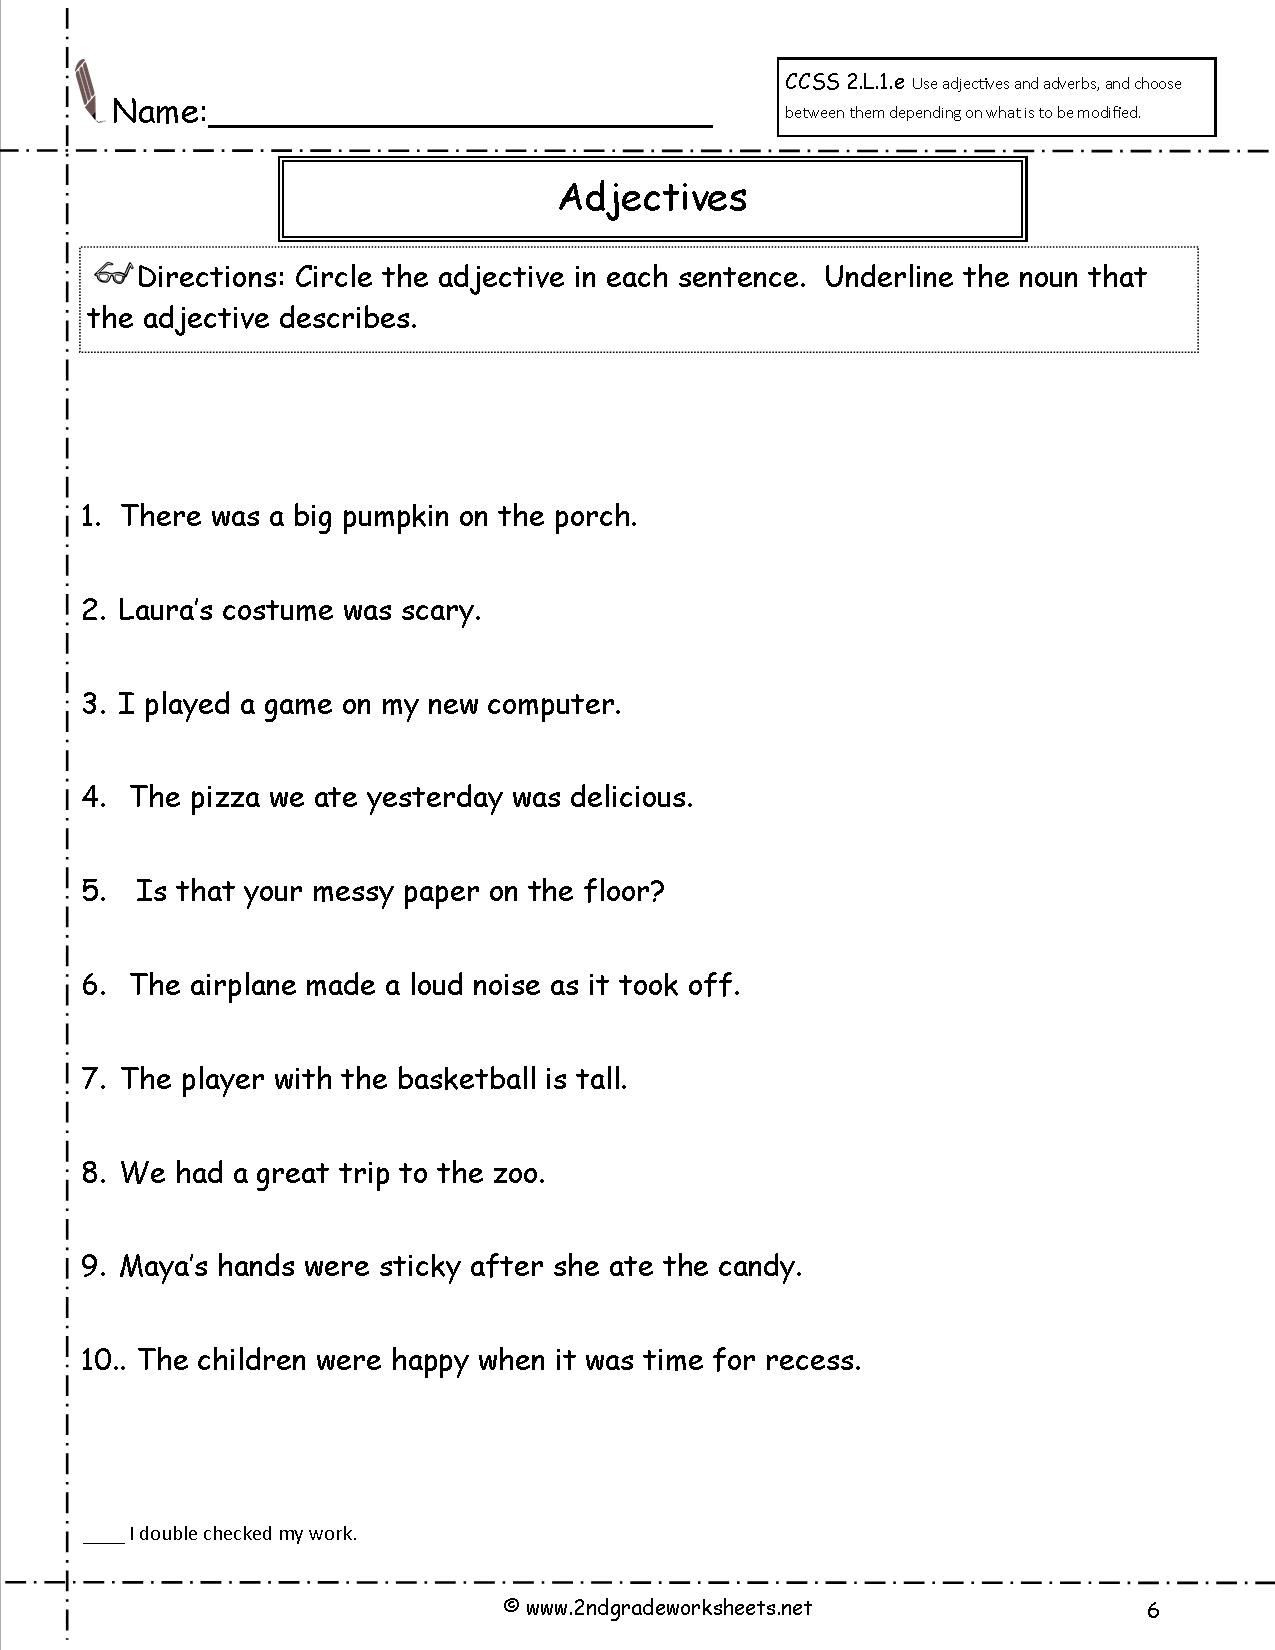 Adjectives Worksheets for Grade 2 Looking for Tutor Anime Girl Coloring Pages Adjectives